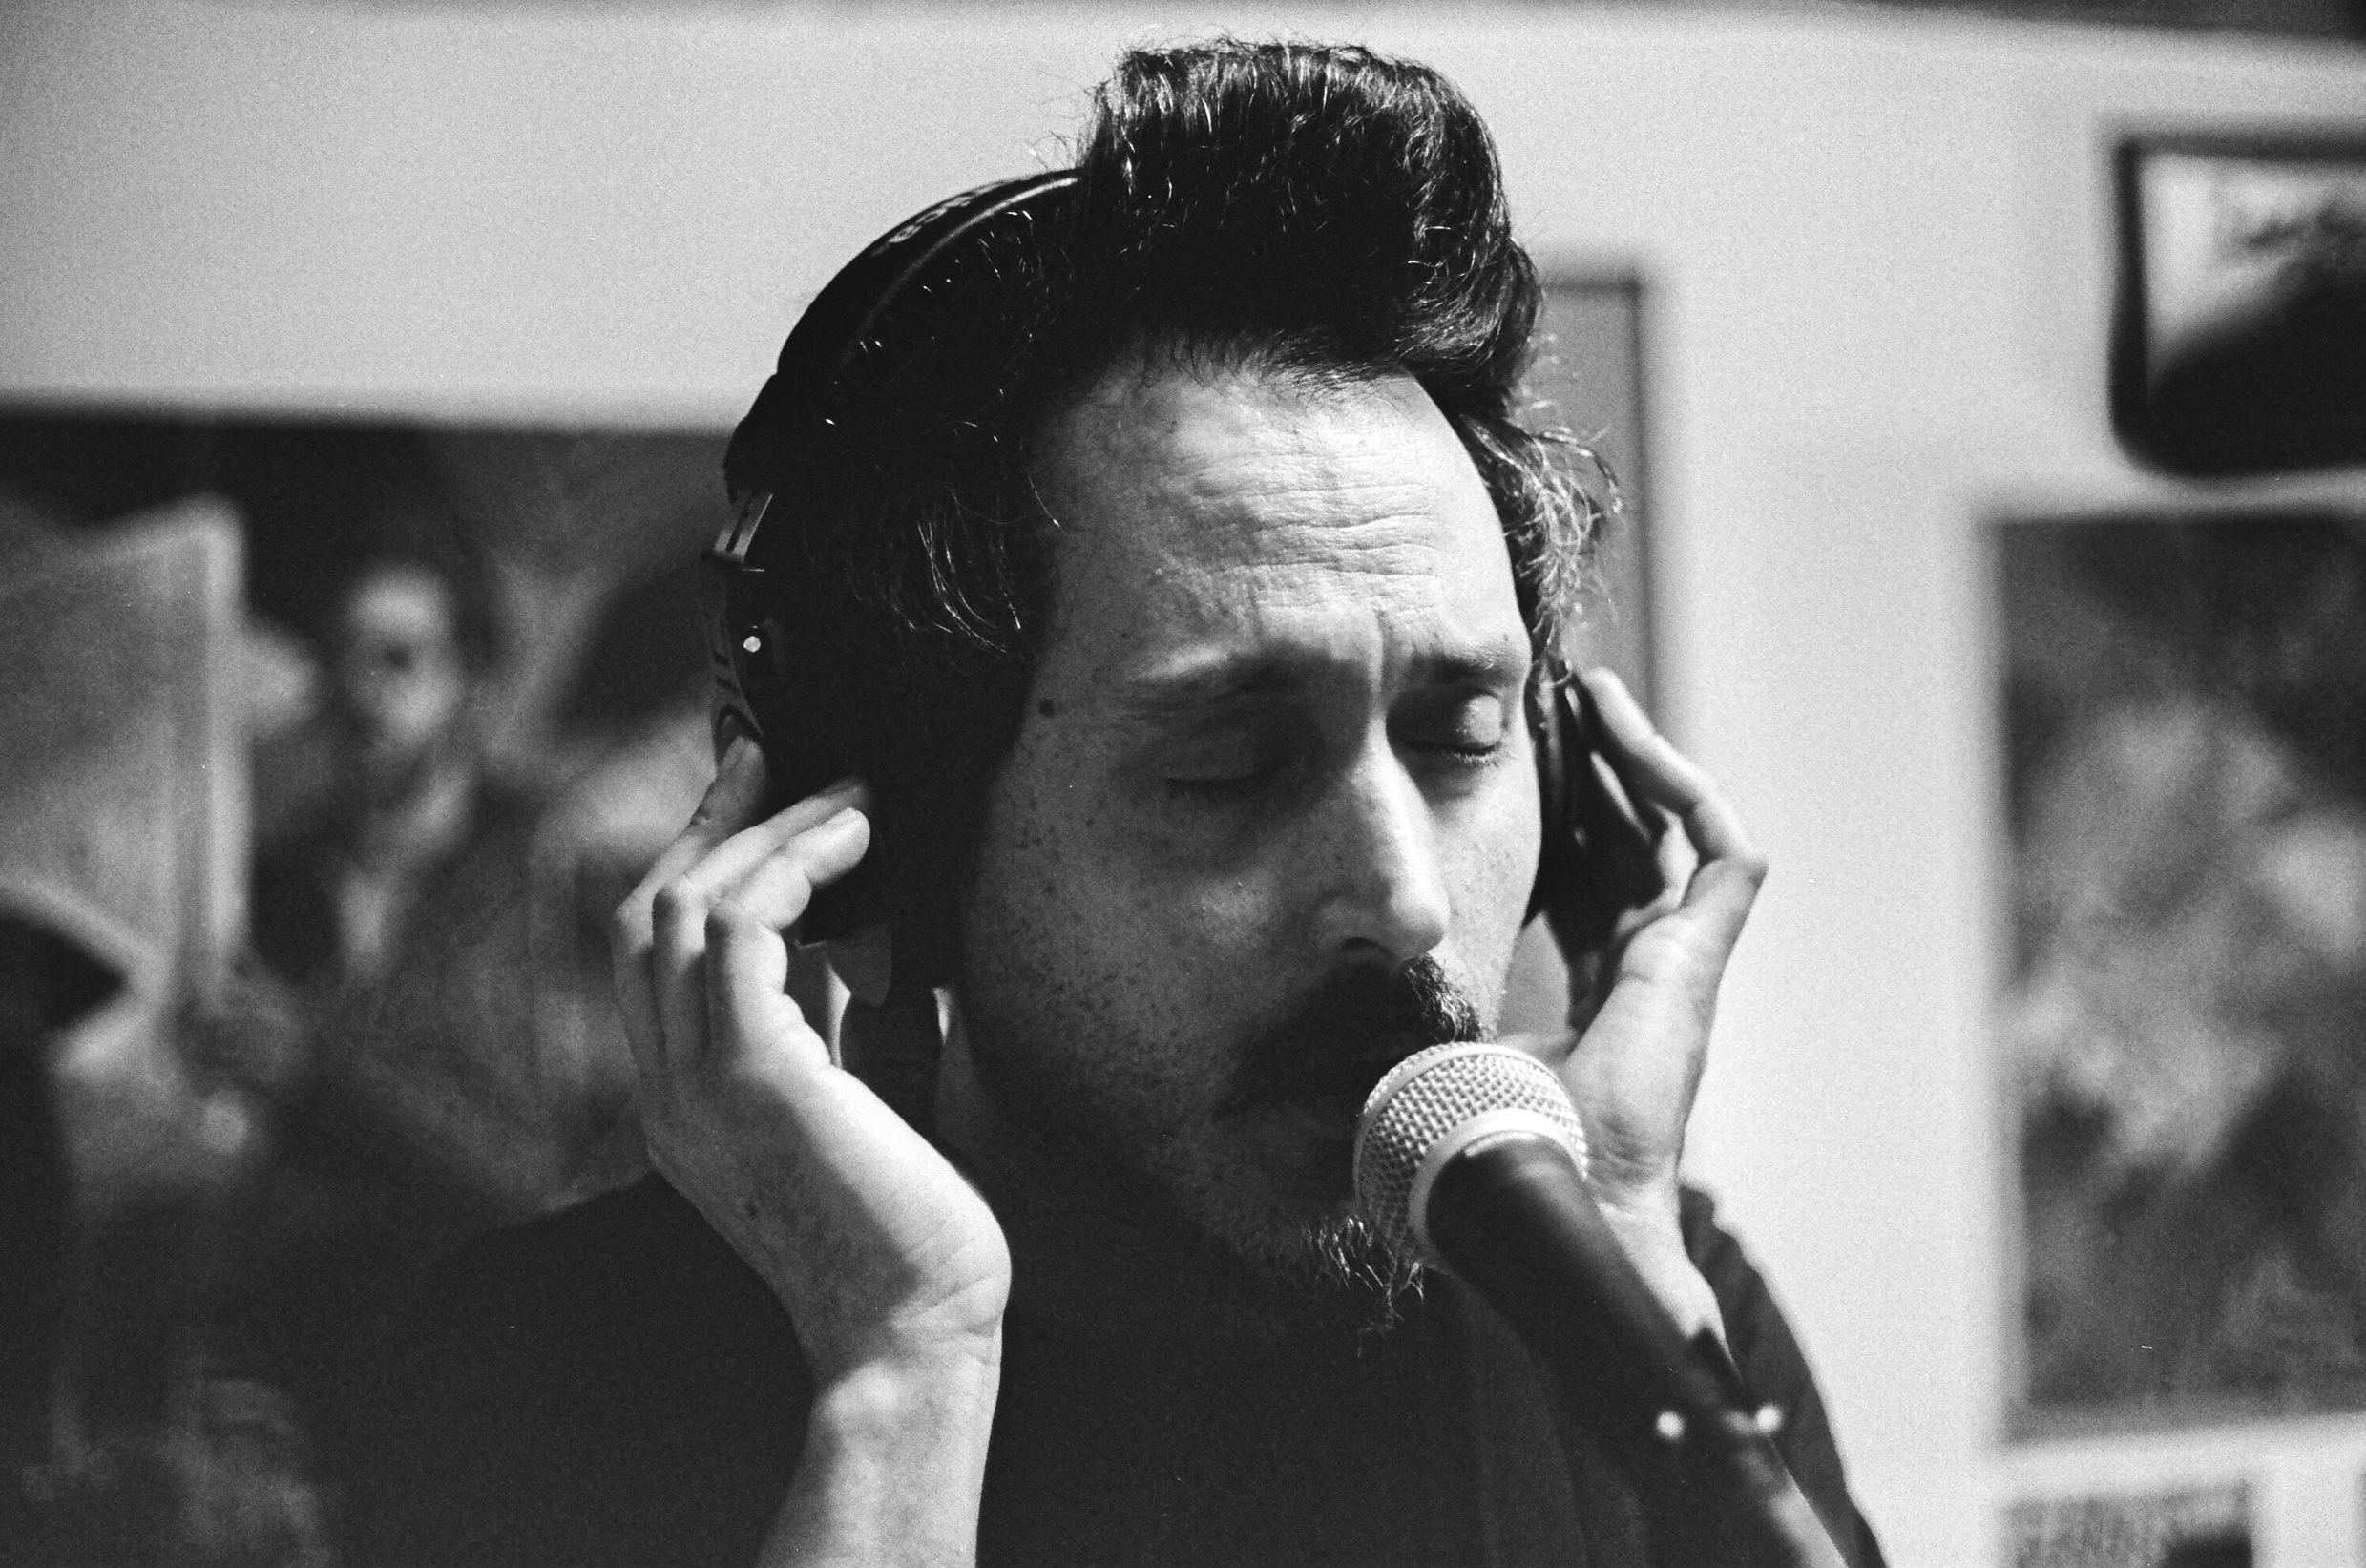 Mario tracking Vocals_Film Photography_NYC_Joe Curry Photography_2018.jpg